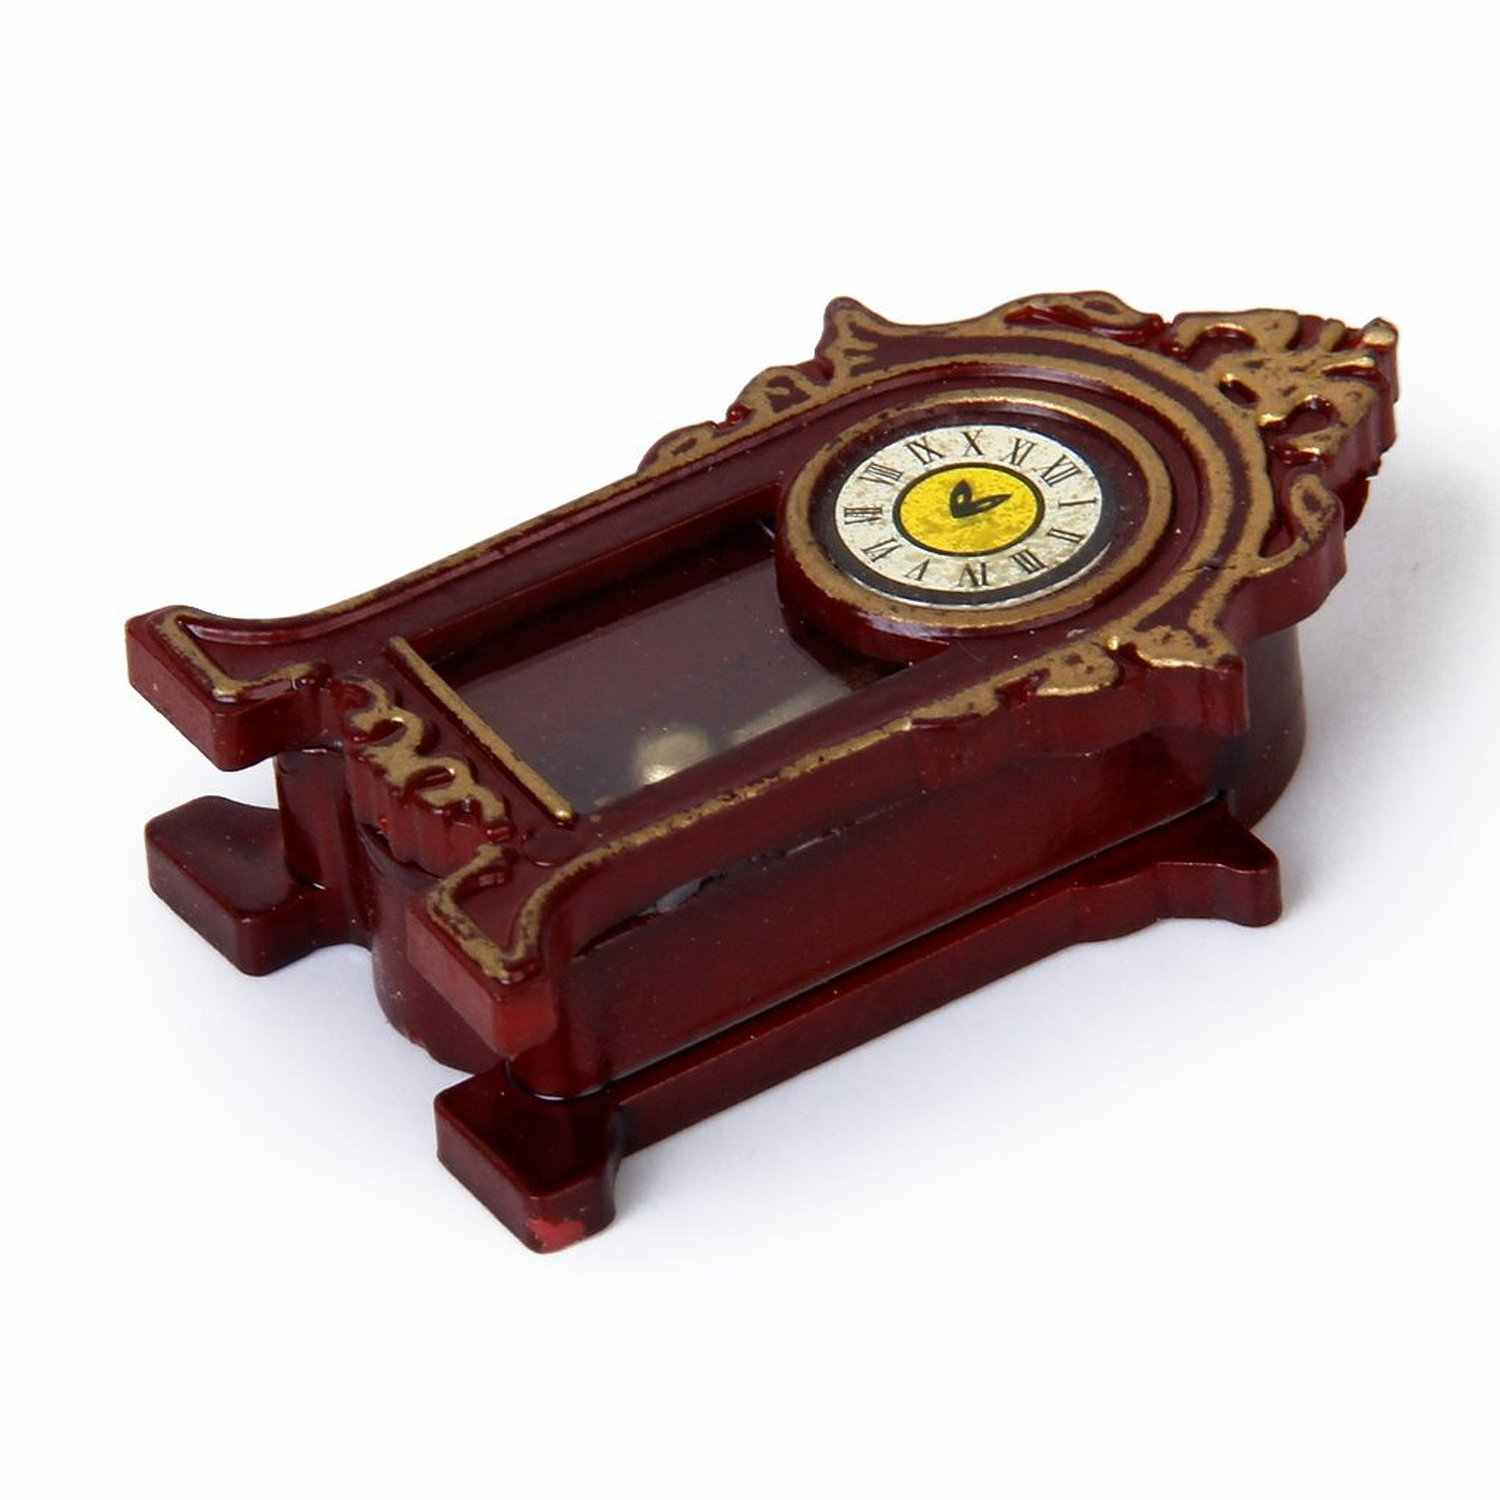 New 1/12 Dollhouse Miniature Halls Classic Table Clock